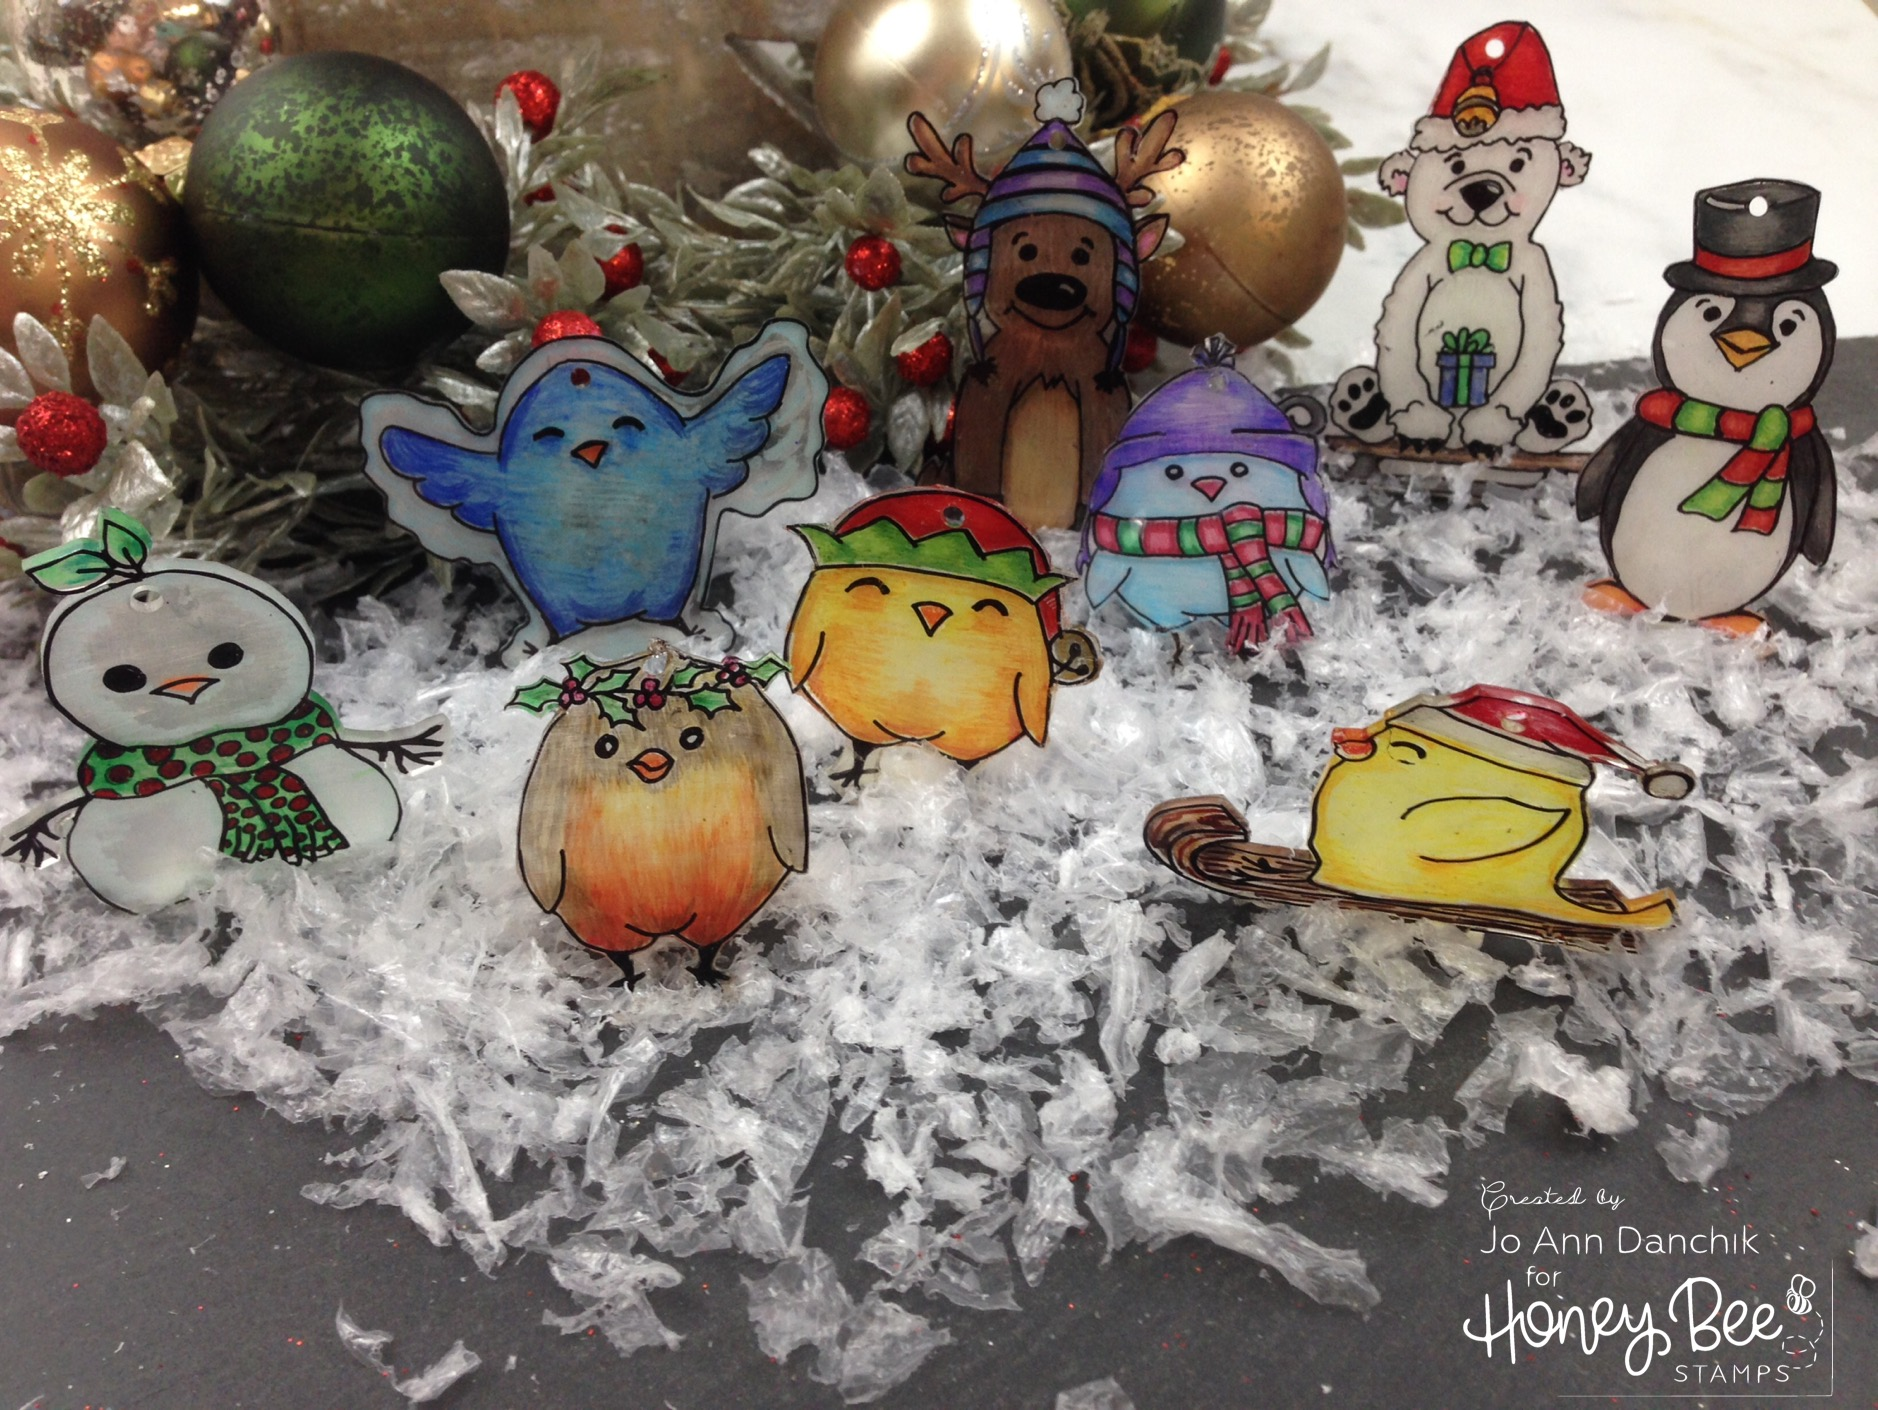 Creative Sundays with Jo Ann: Shrinky Dink Ornaments